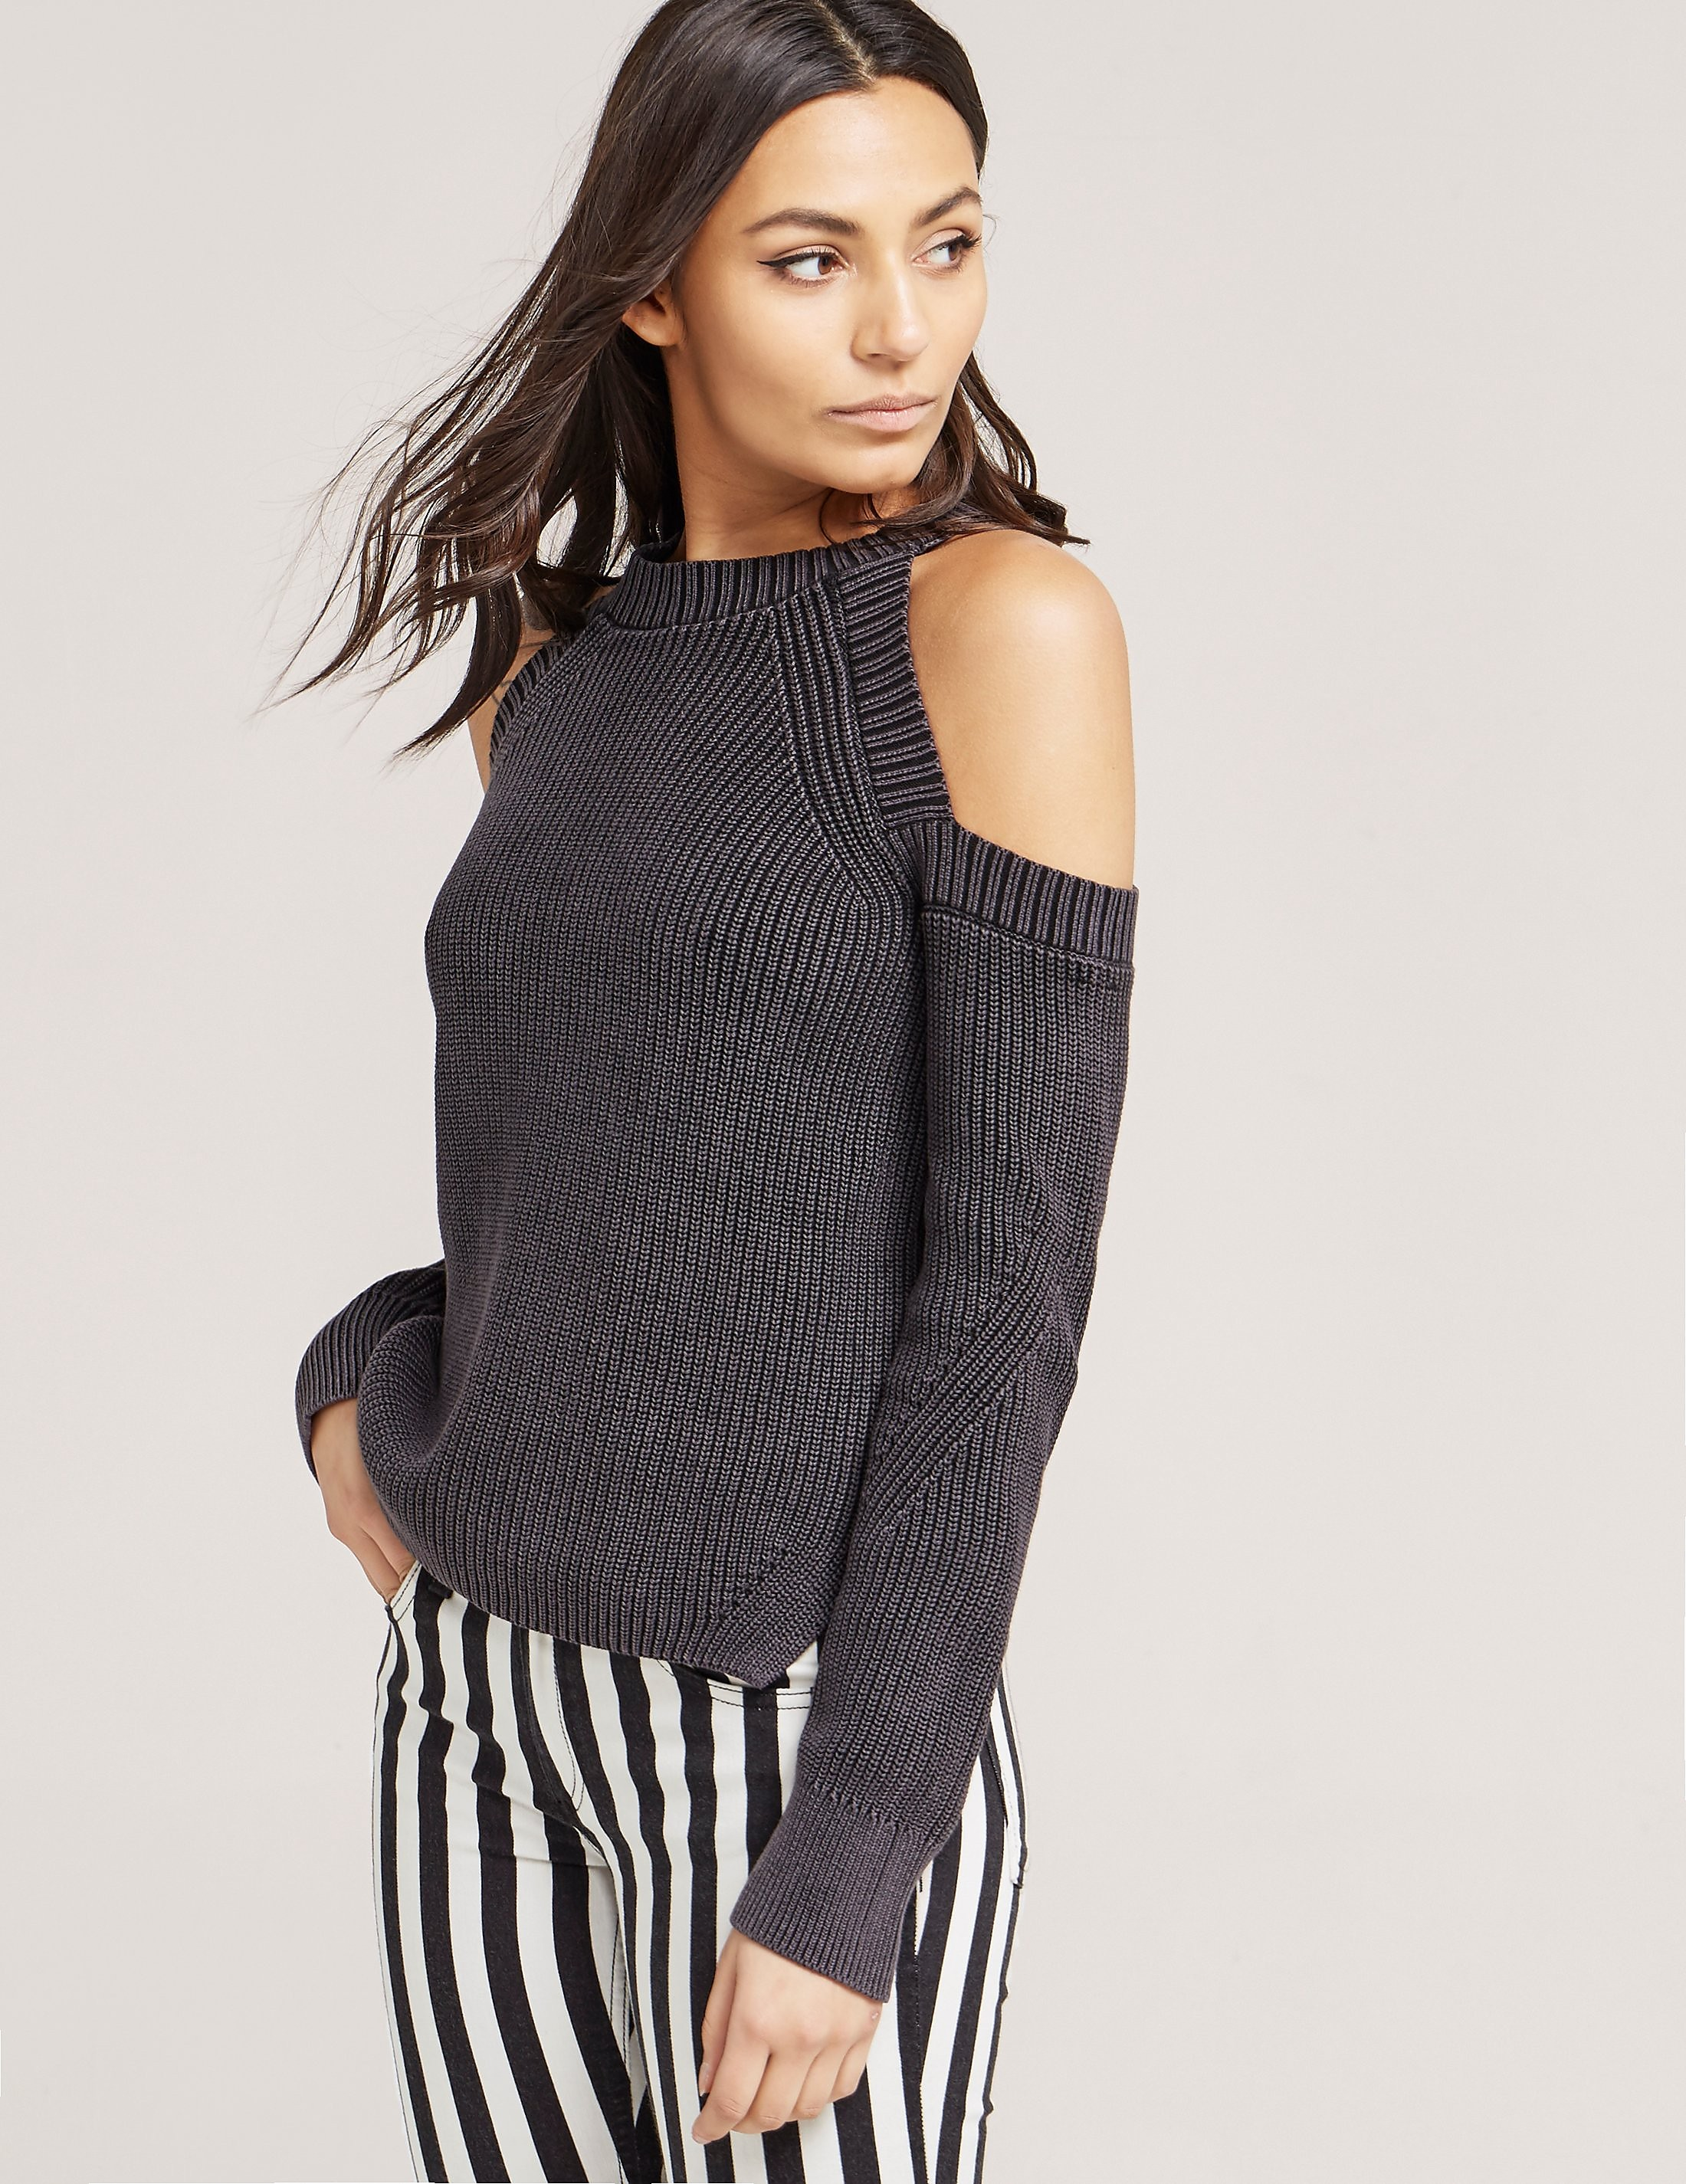 Rag & Bone Dana Cold Shoulder Knit